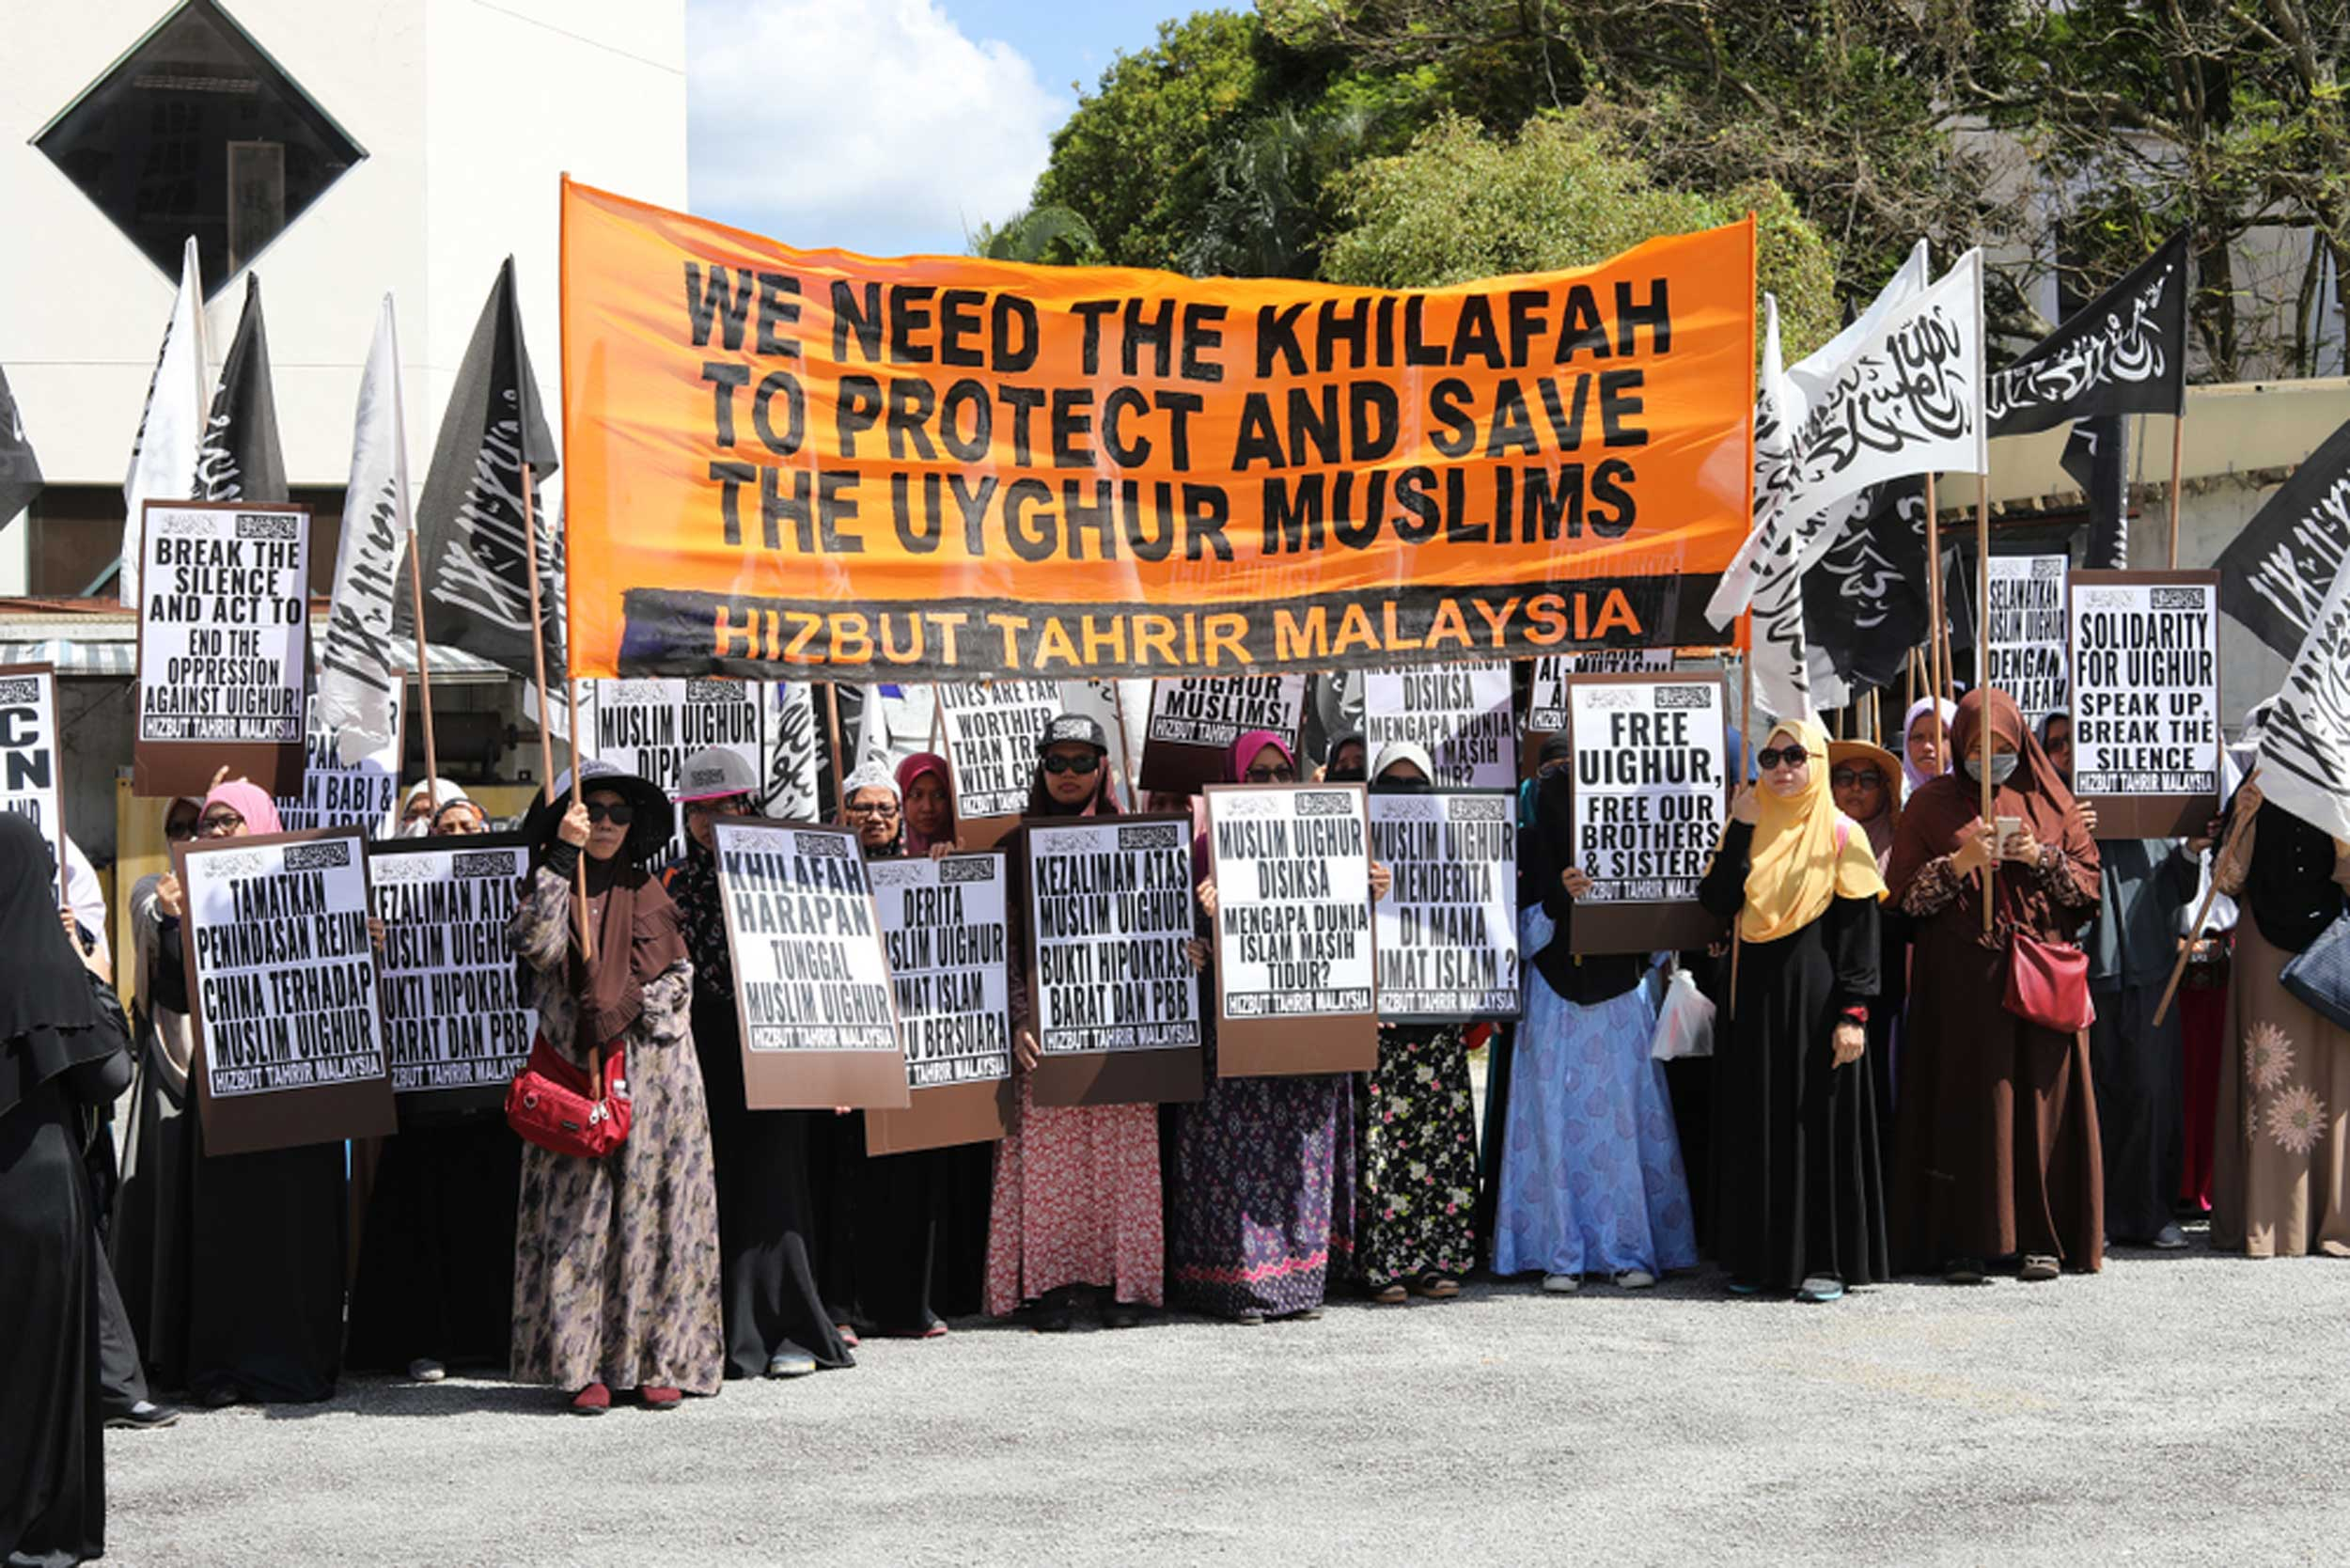 Malaysian women hold banners in support of Uighur Muslims in Chinese detention and political indoctrination centres, in Kuala Lumpur, on December 11, 2018.